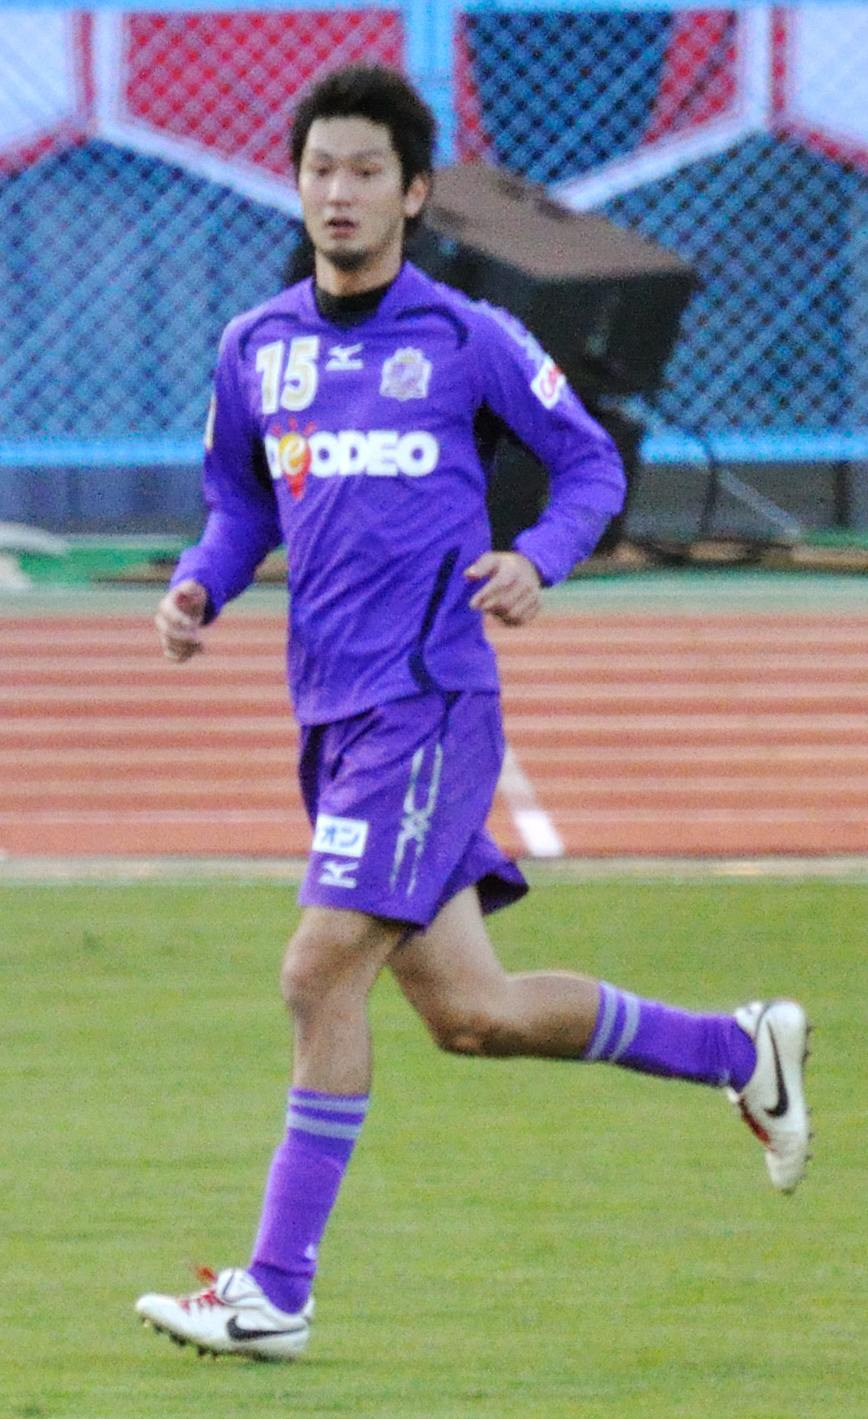 takahagi senior personals An asia football blog to play in the united football league and dating models rather than busting their last year and scored his first senior goal this year.